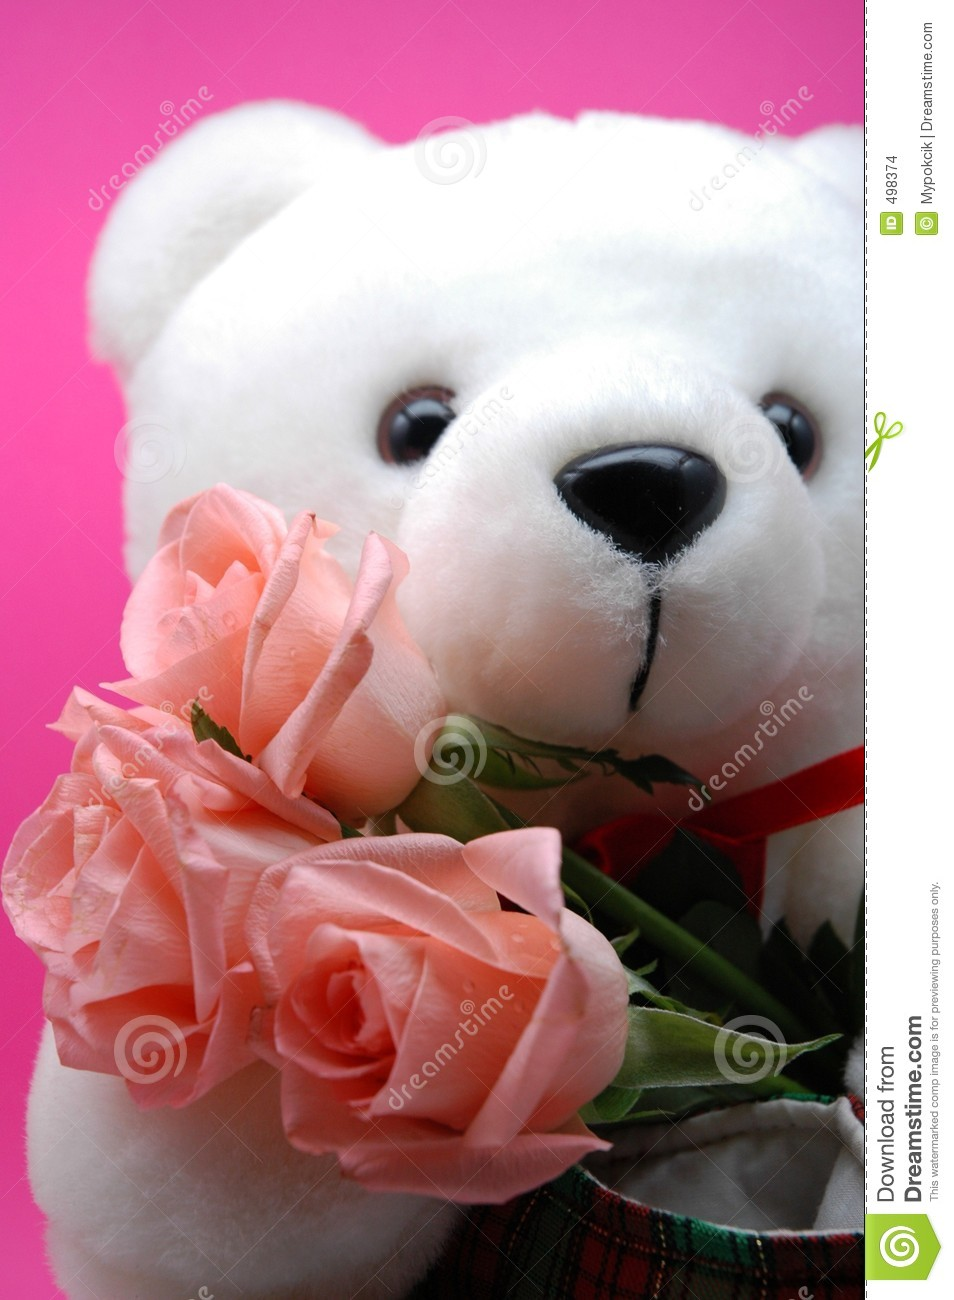 Teddy bear with pink roses - photo#5